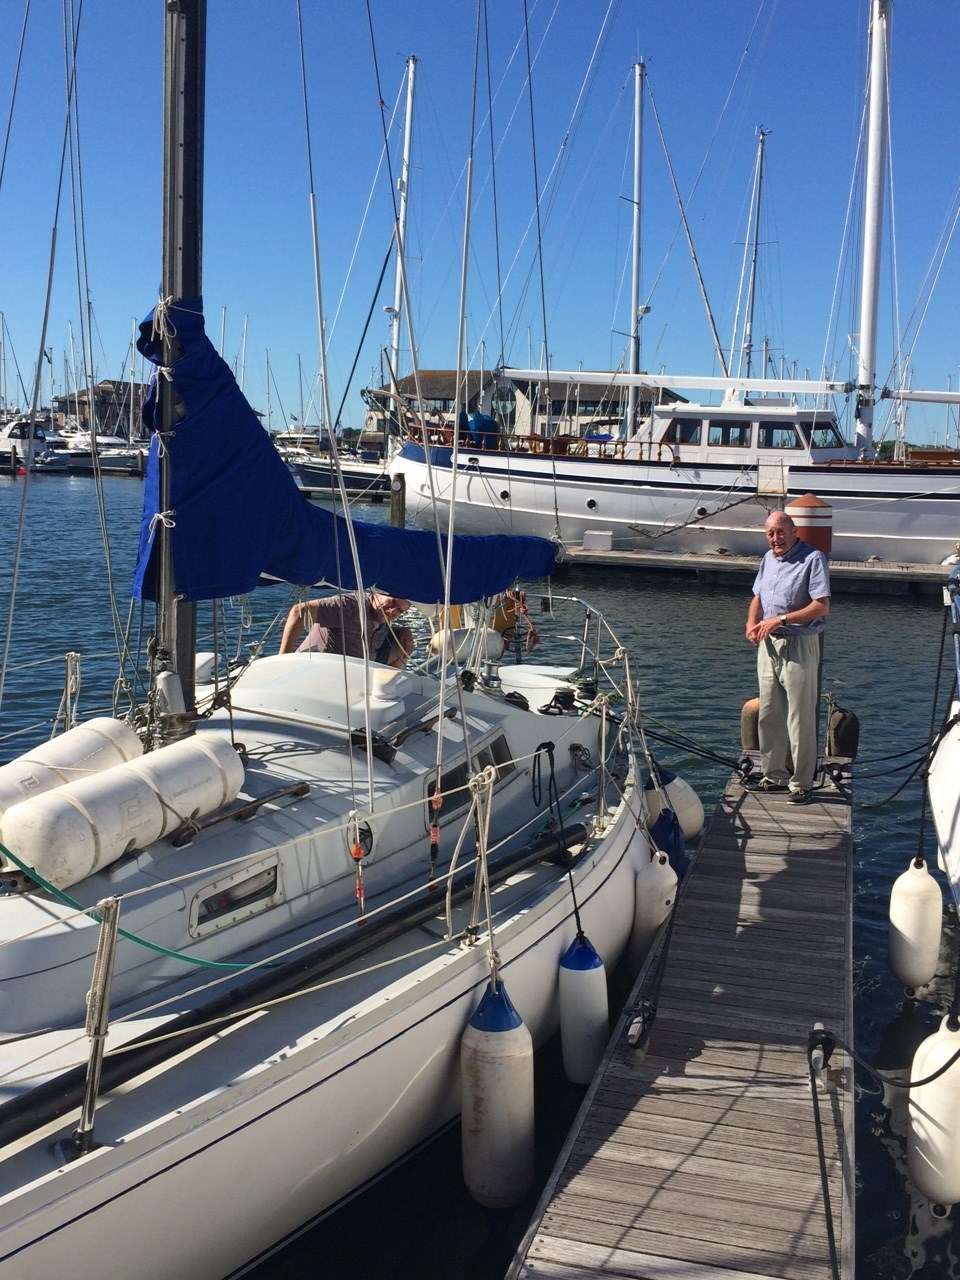 Putting Zeus back on her berth, July 5th 2015